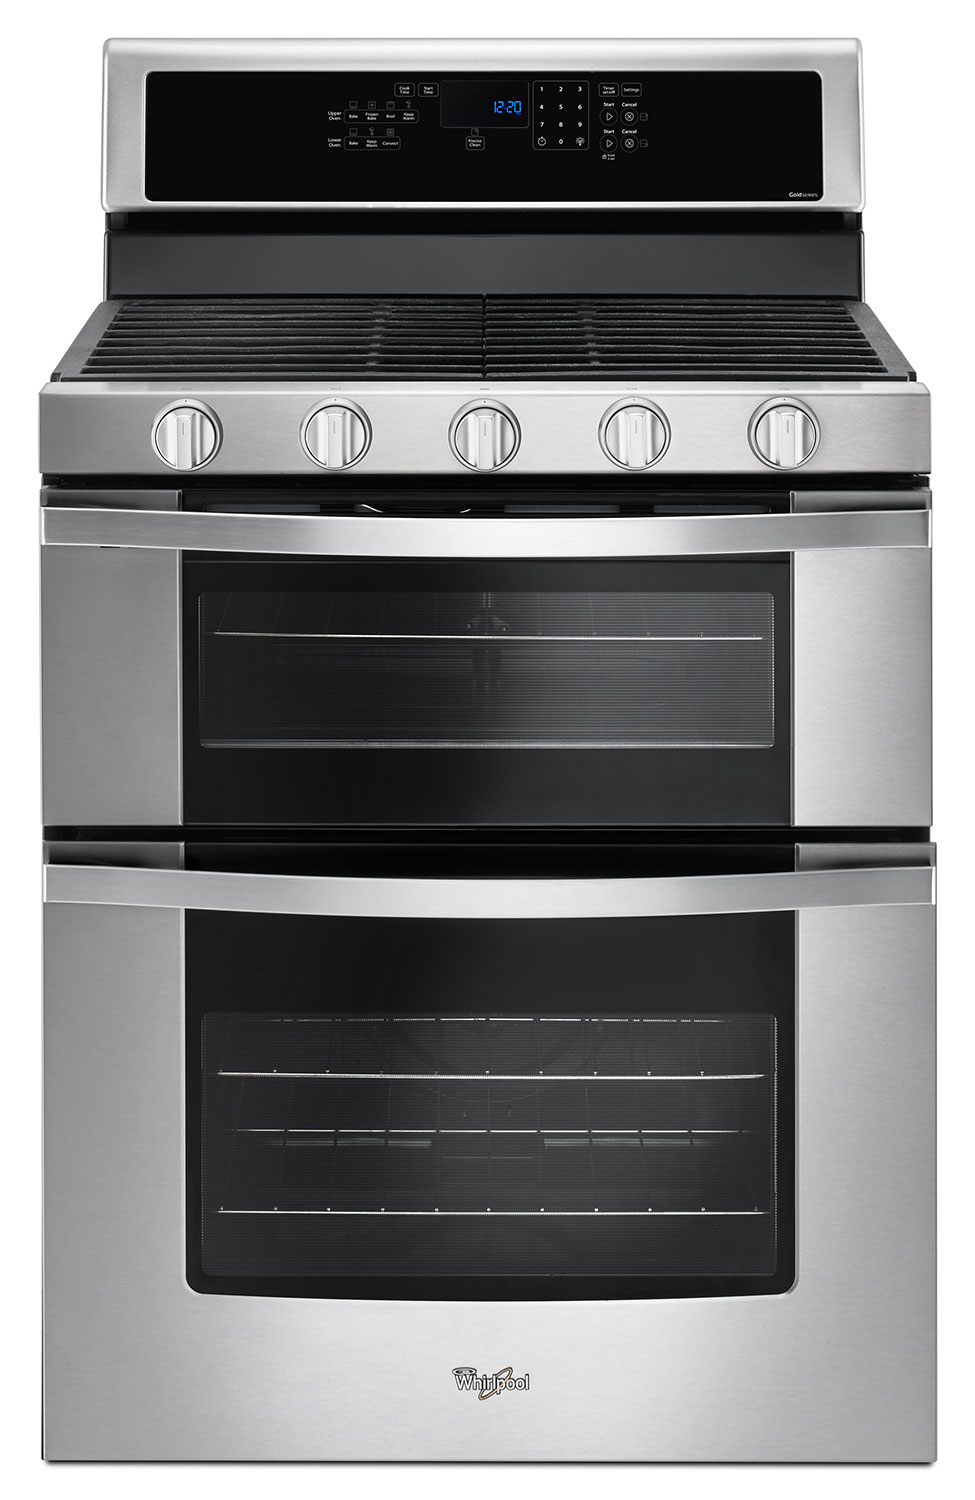 Cooking Products - Whirlpool Stainless Steel Freestanding Double Gas Range (6.0 Cu. Ft.) - WGG745S0FS